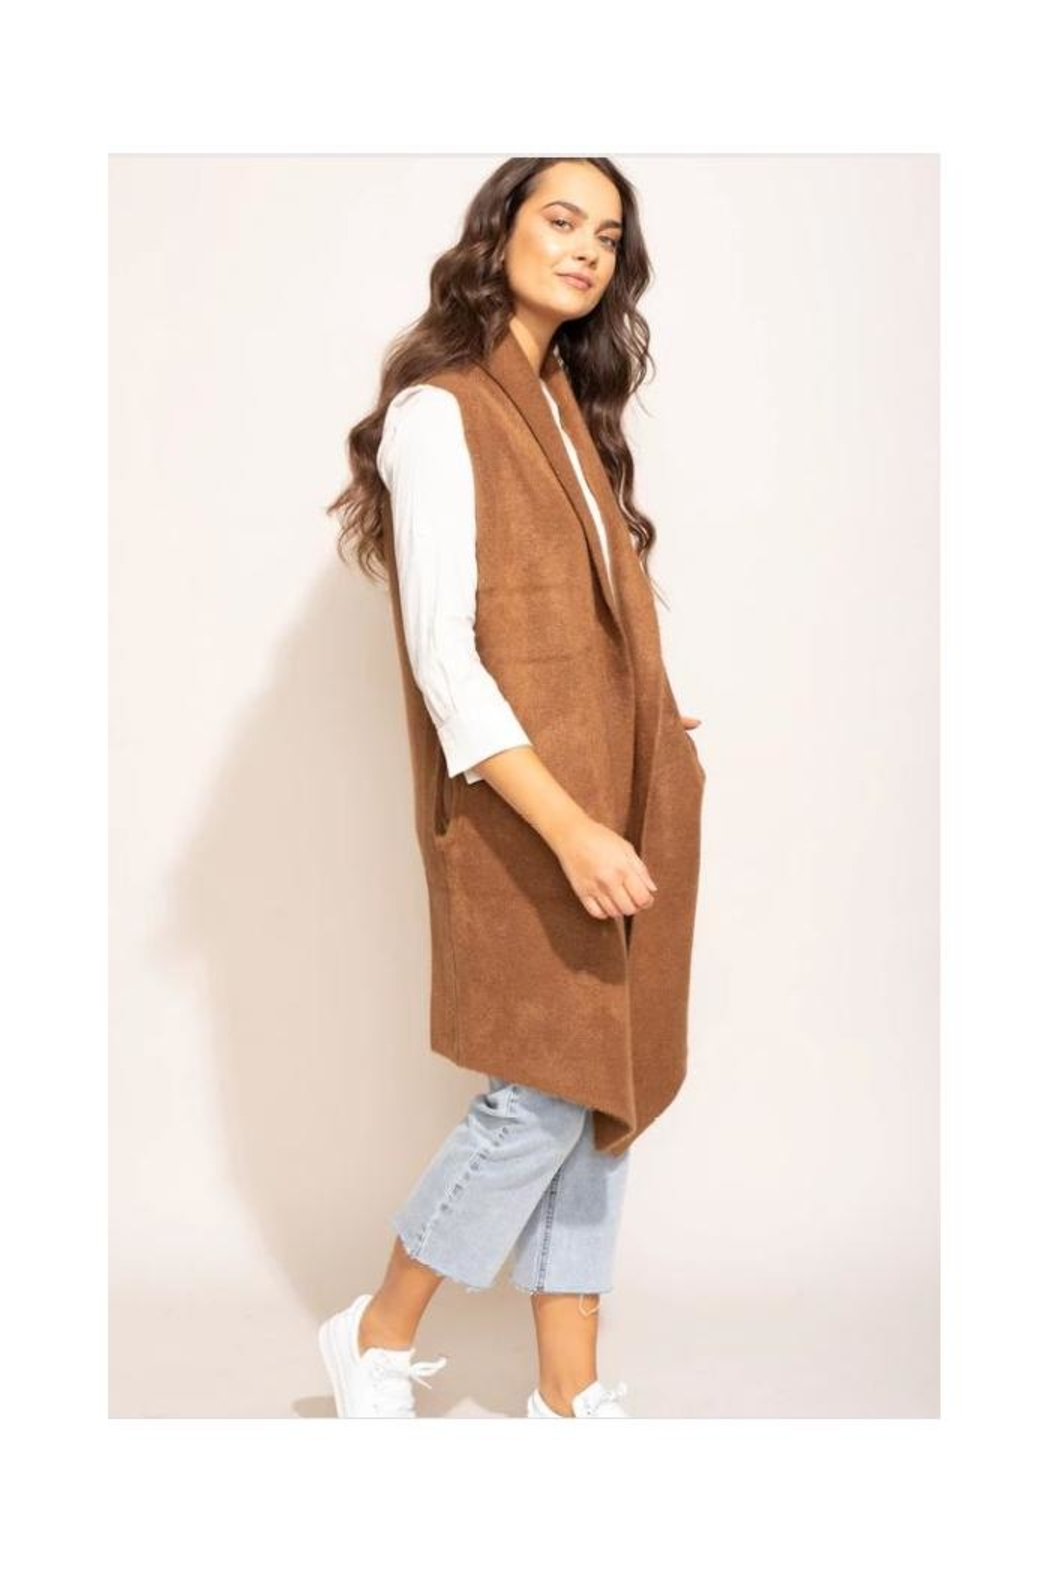 Pink Martini Stockport Vest In Brown - Main Image